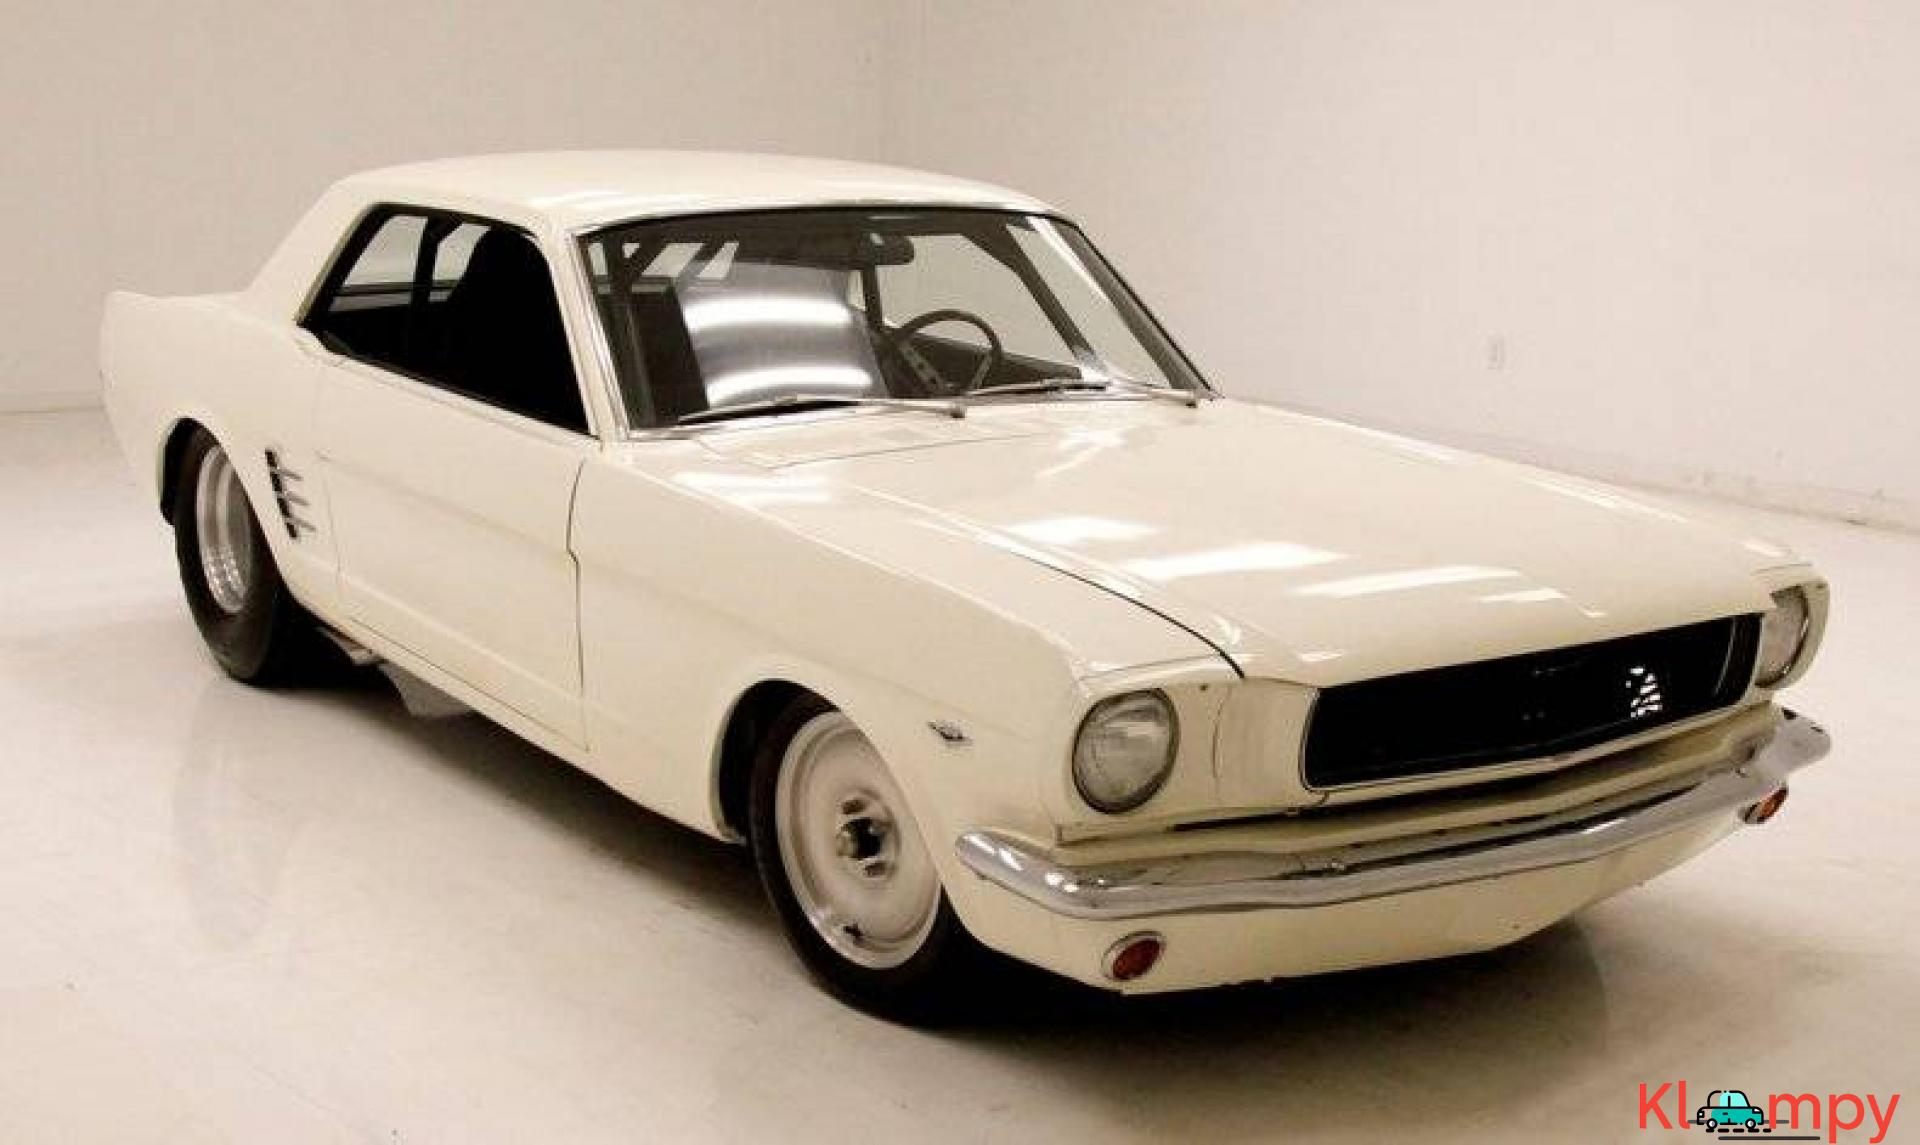 1966 Ford Mustang Coupe 302ci V8 White - 6/20